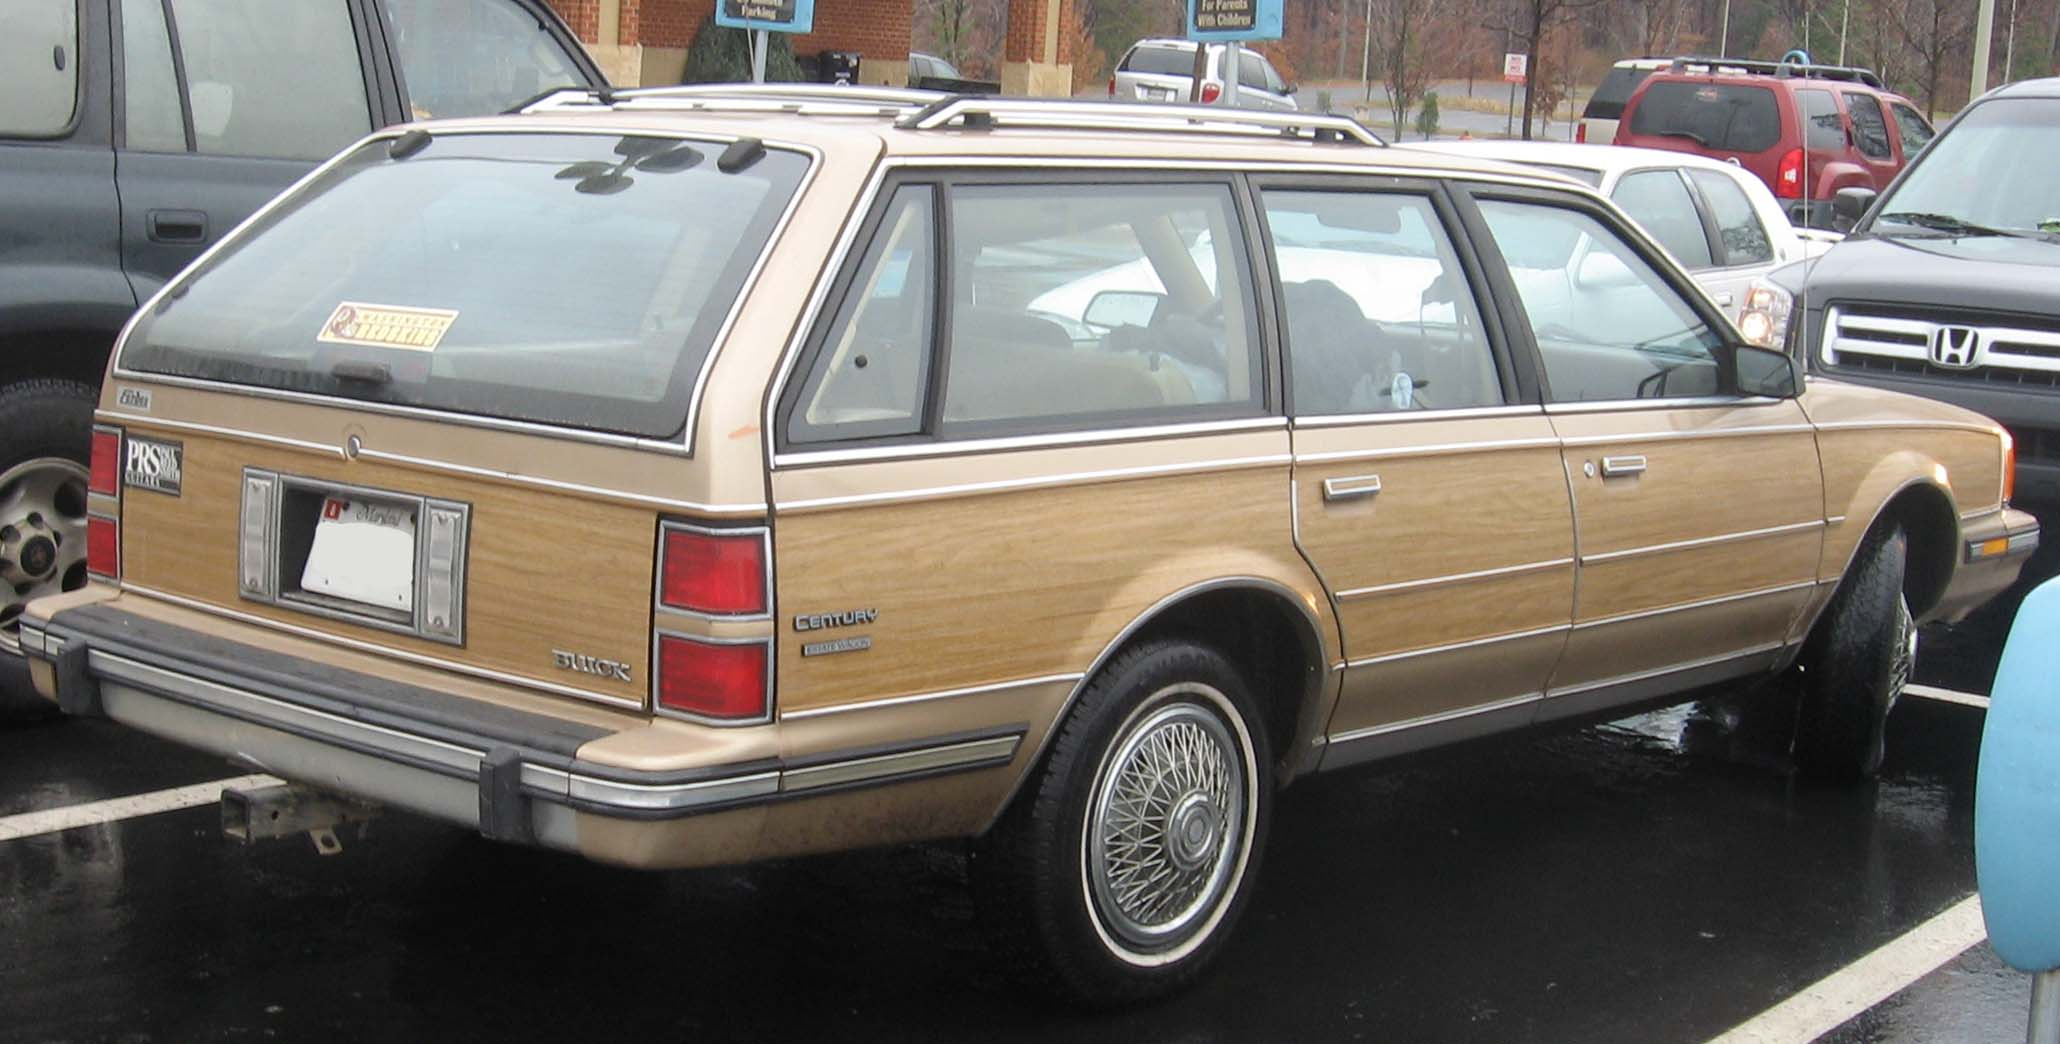 1991 Buick Century Engine Diagram Trusted Wiring Lesabre File 82 88 Estate Wagon Wikimedia Commons 1990